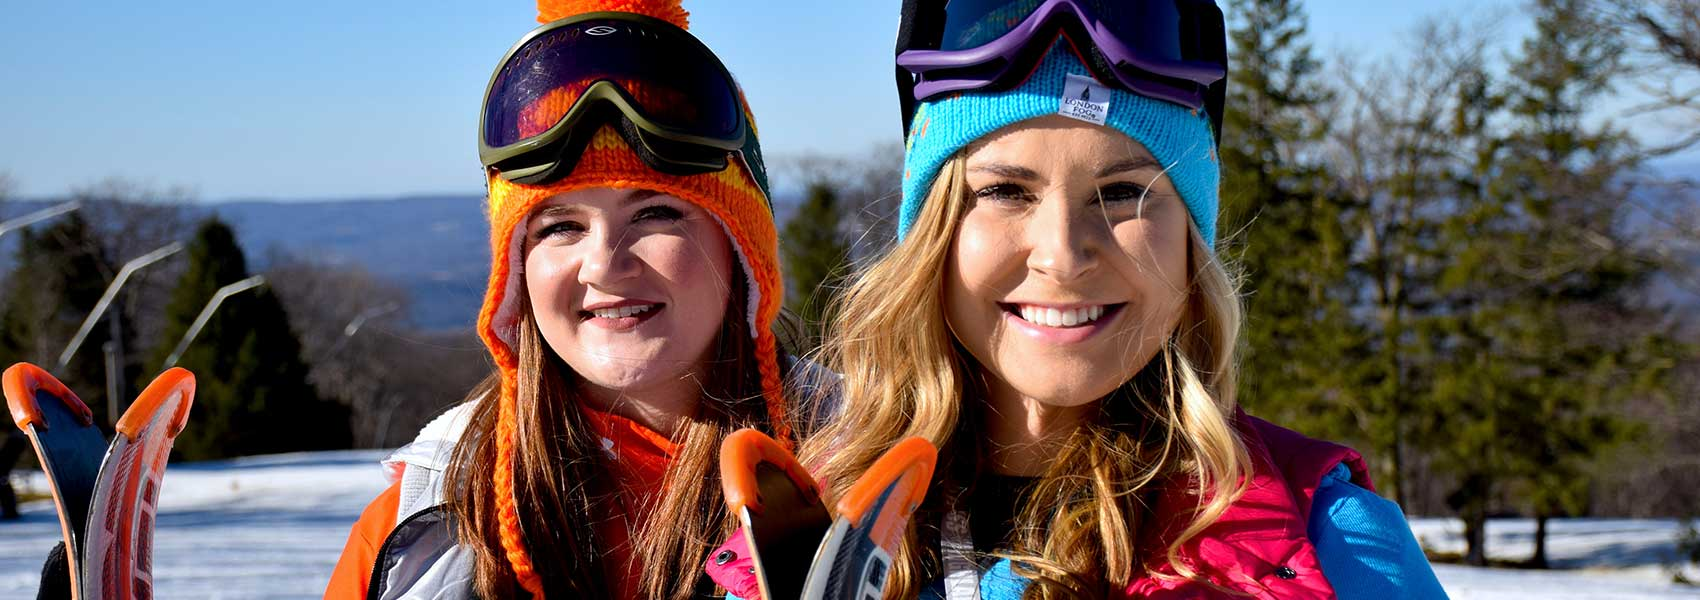 two-female-skiers-smiling